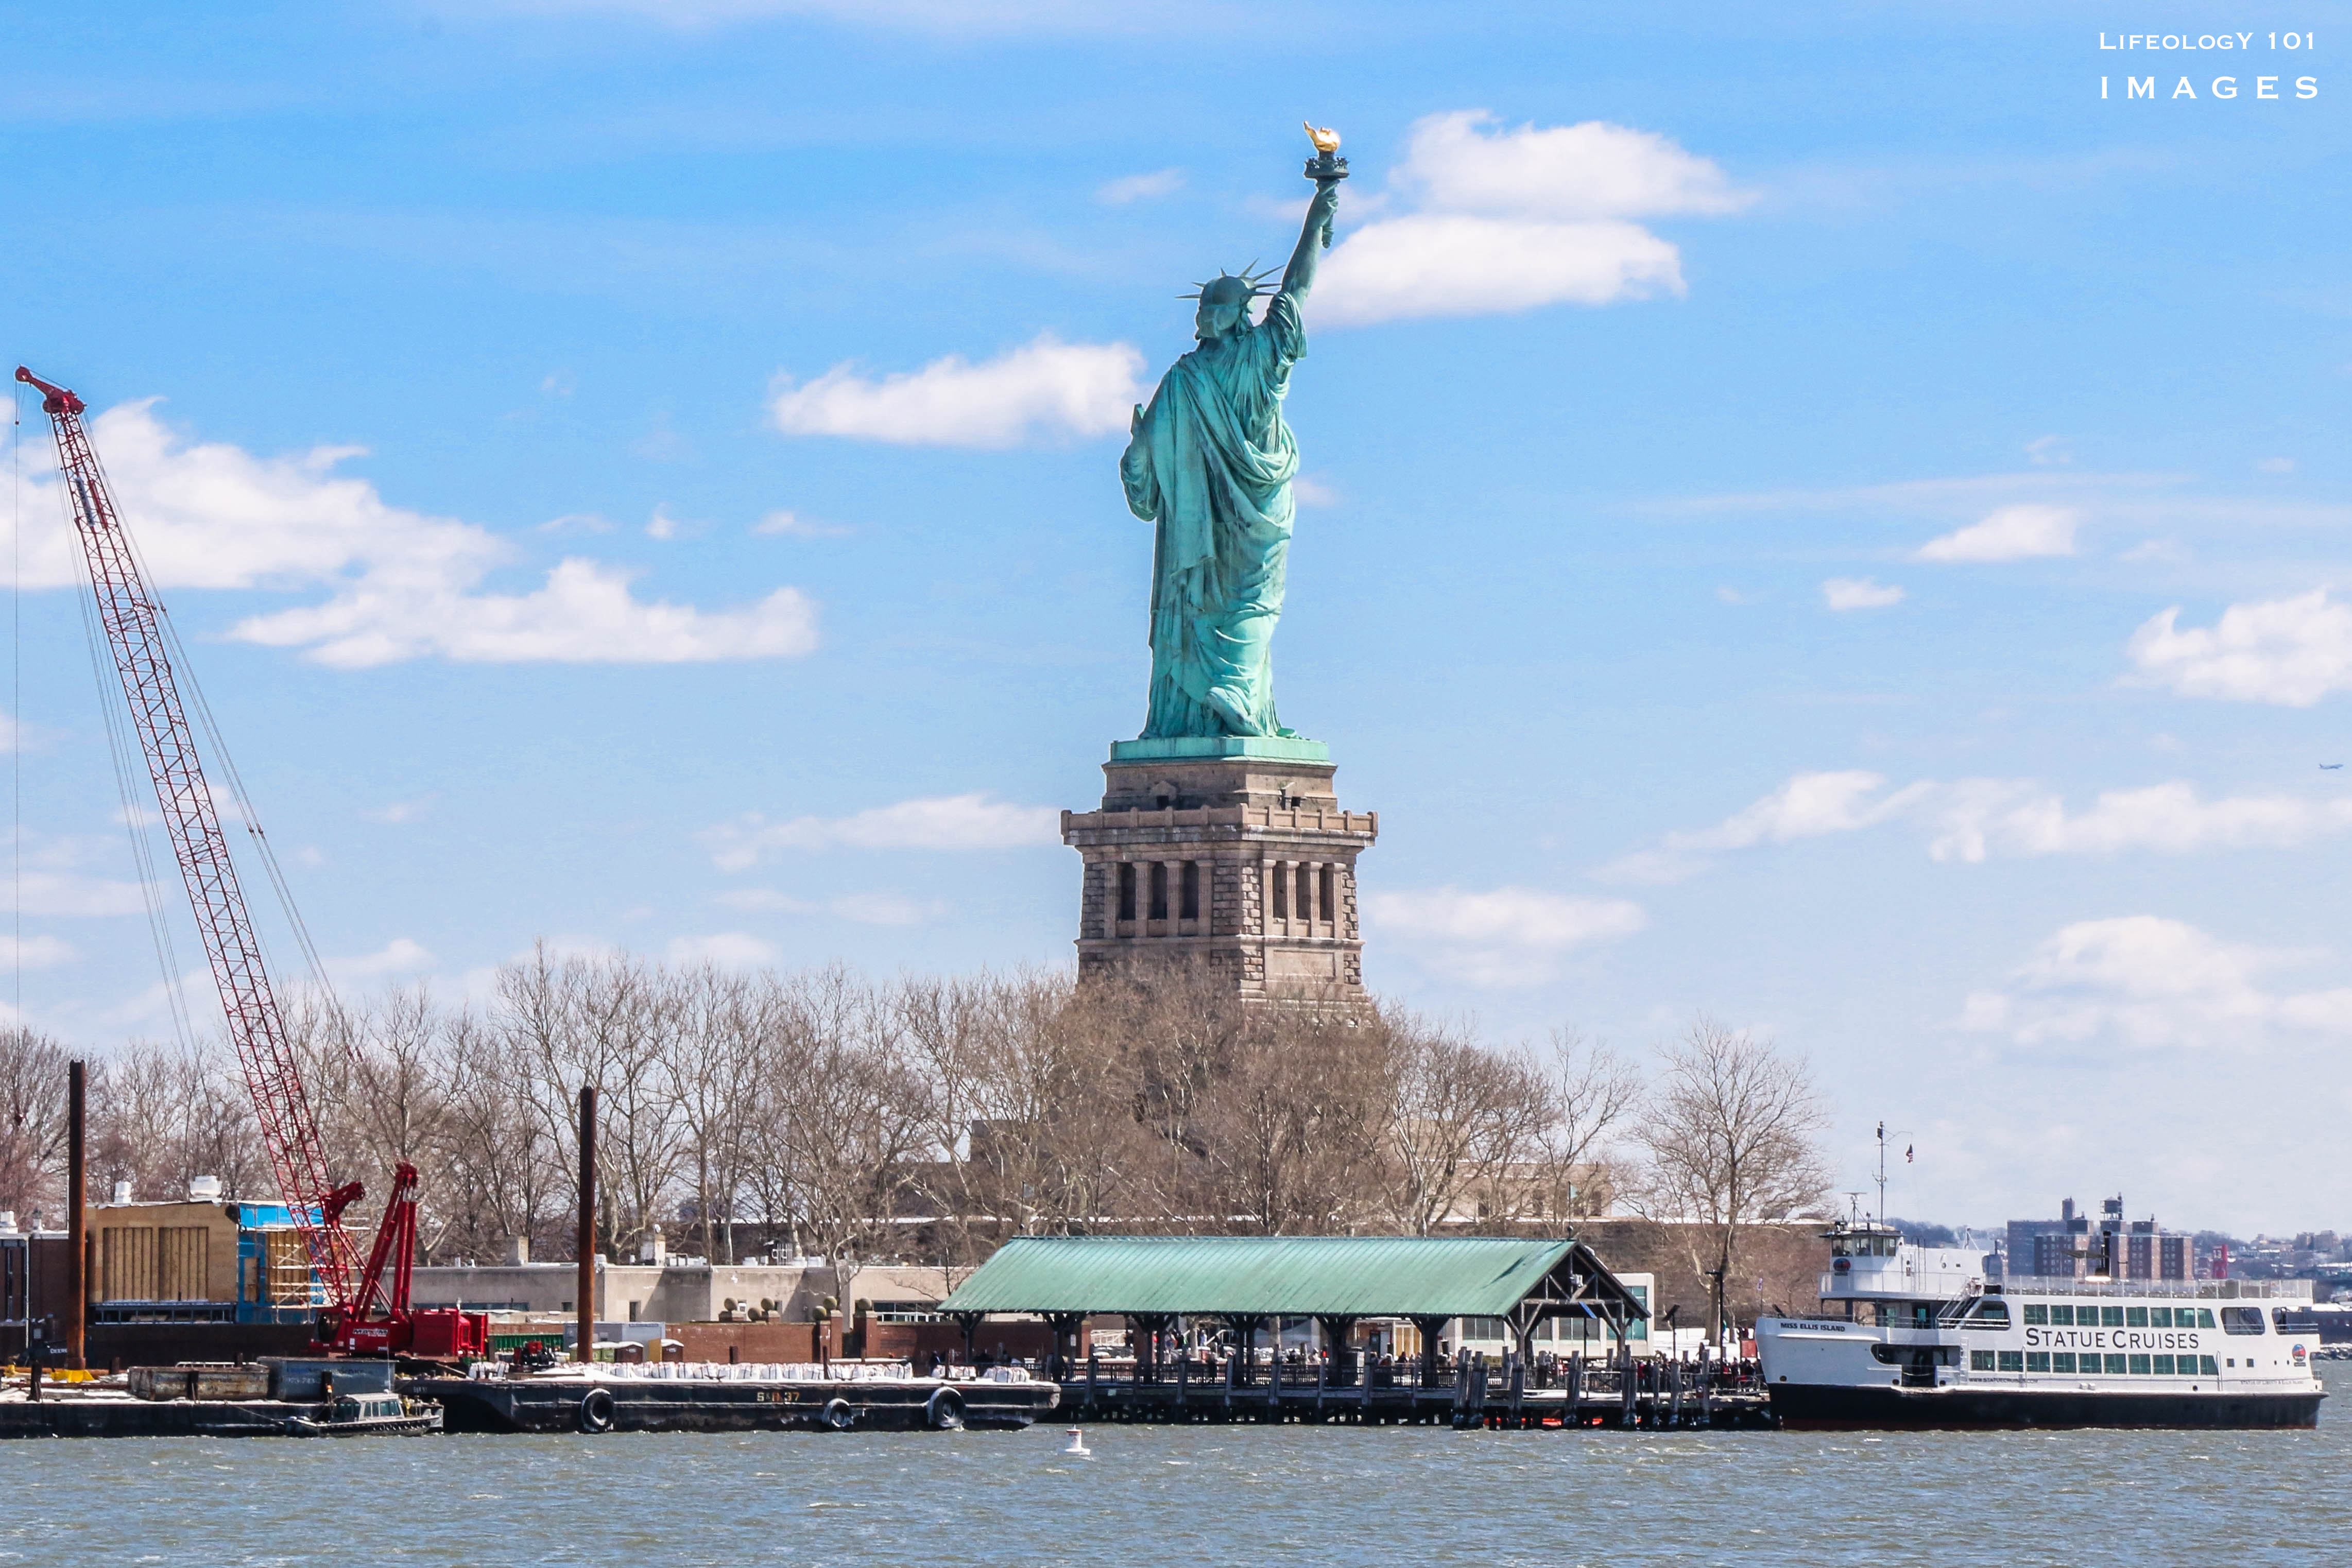 Liberty State Park – Lady Liberty and New York Skyline – Lifeology 101